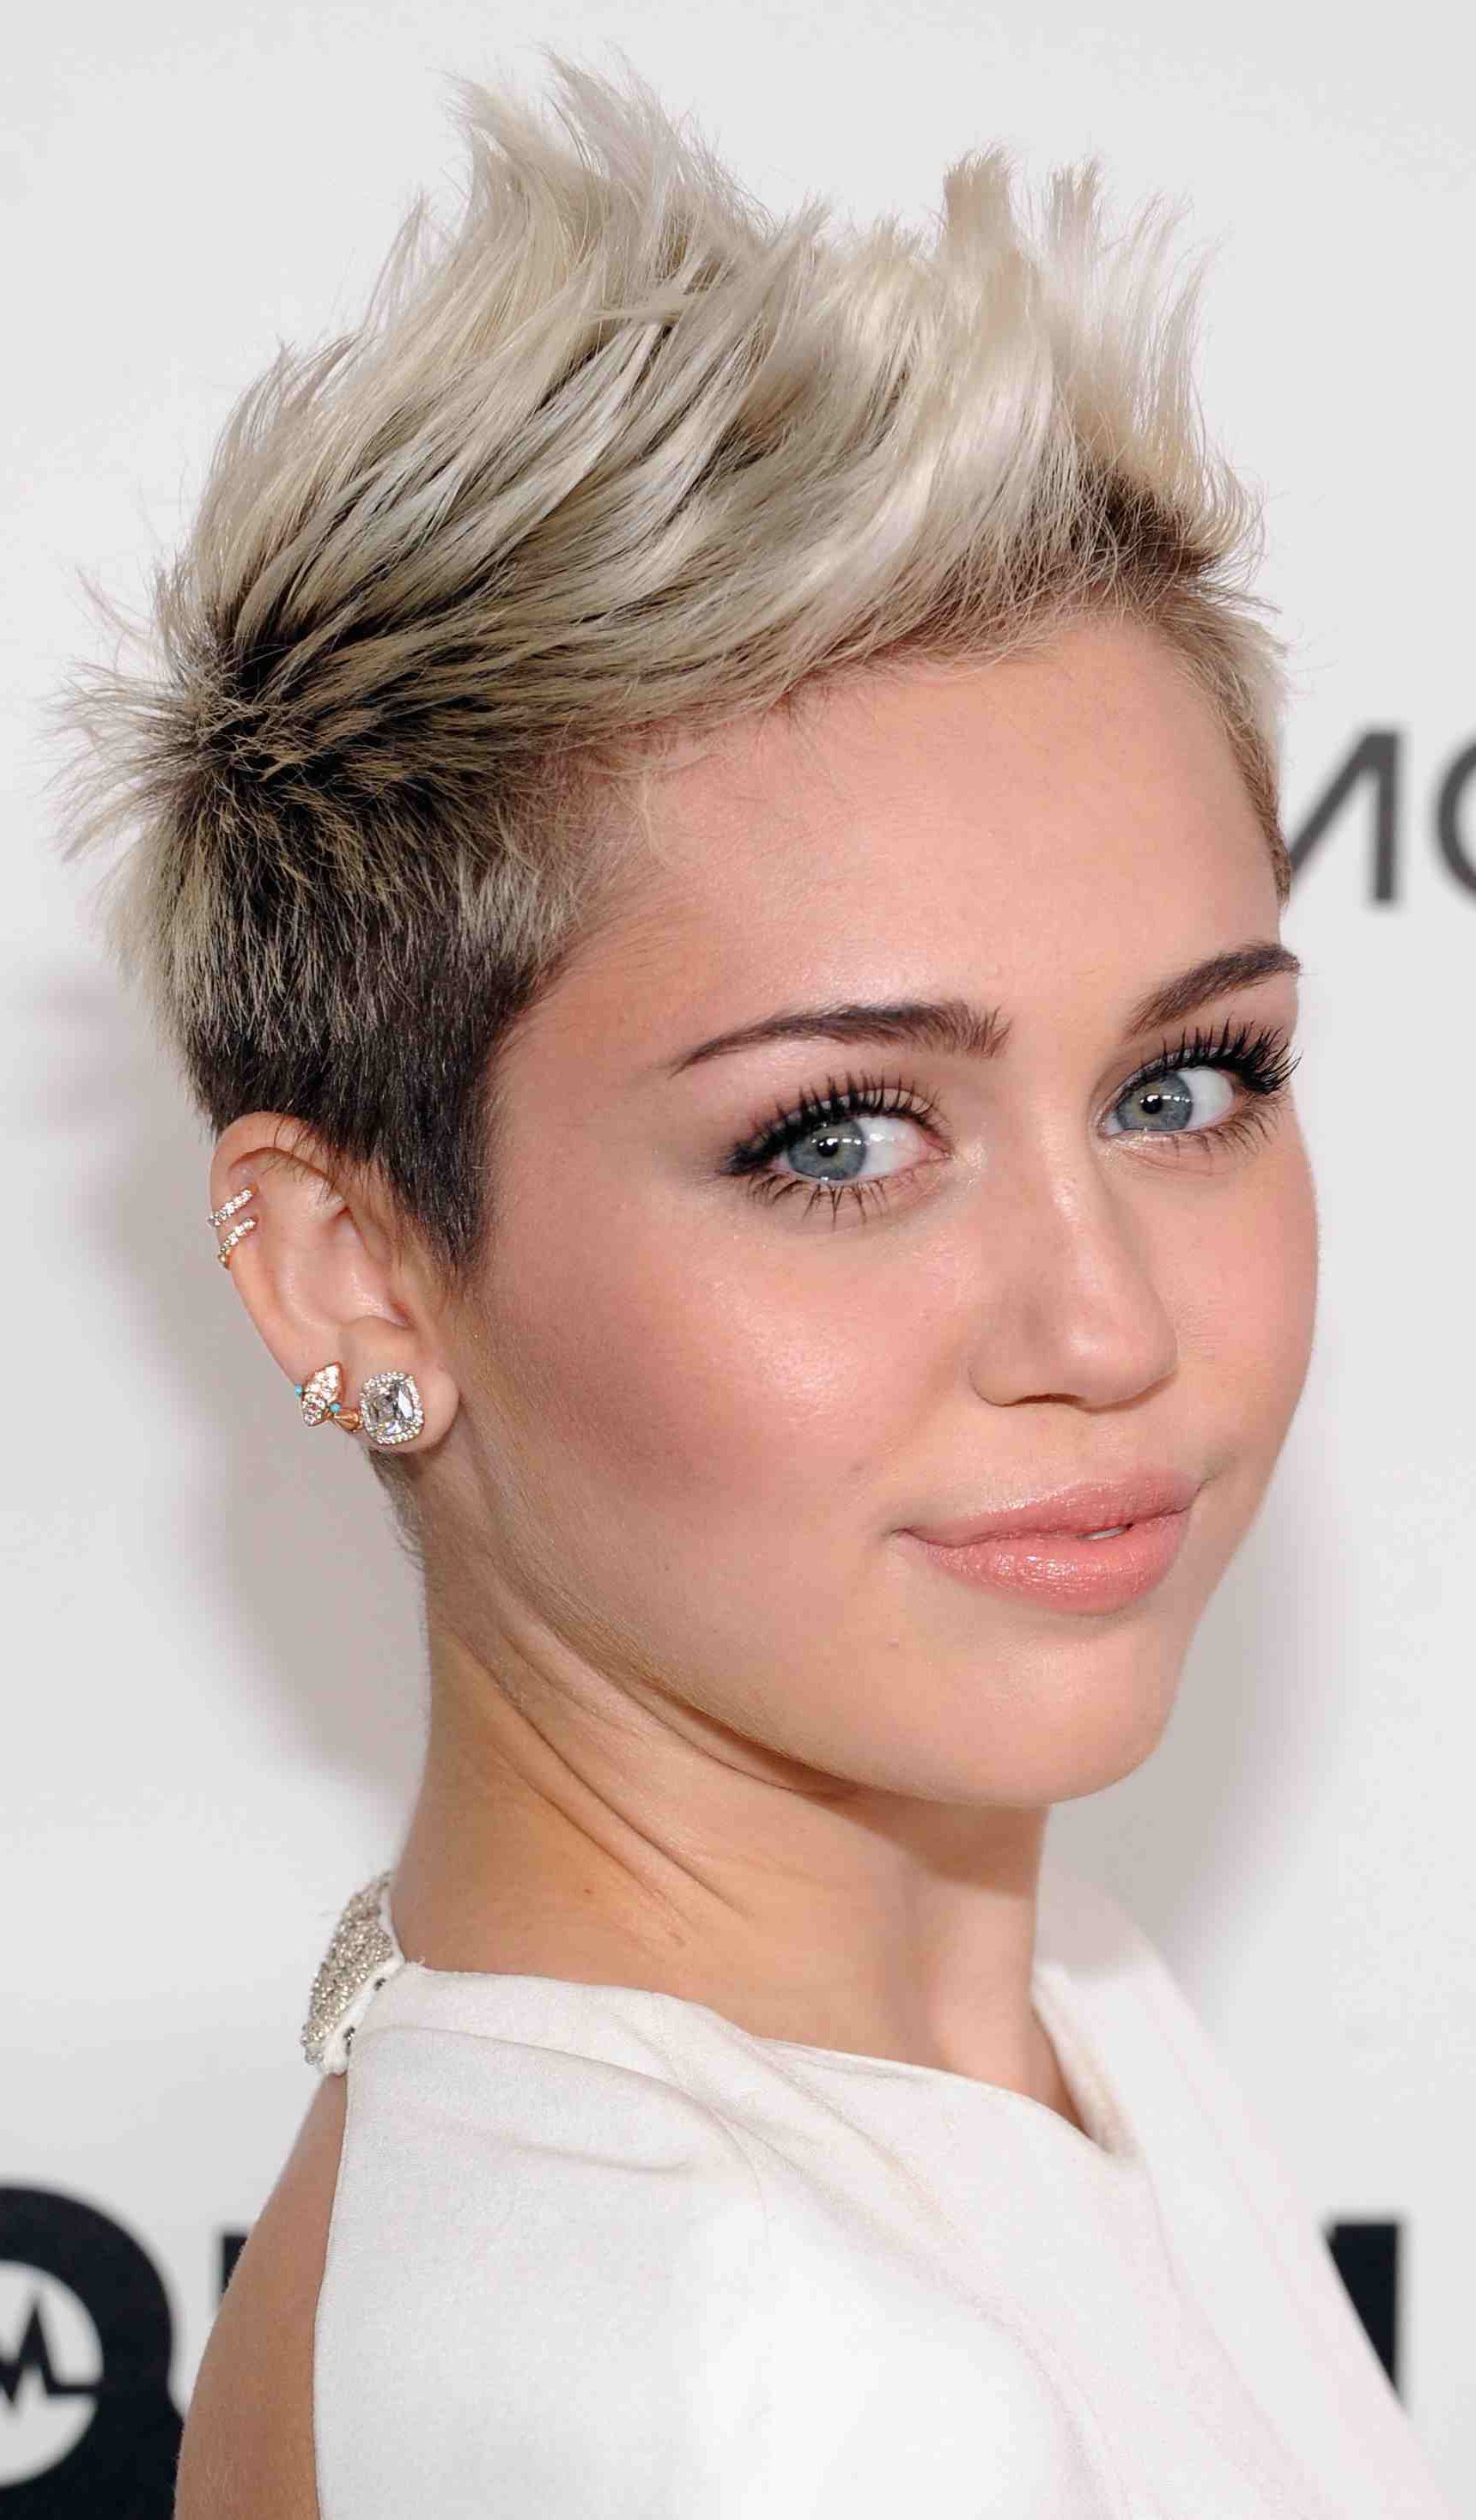 19 Hairstyles Women In Their 20S Can Get Away With Intended For 20S Short Hairstyles (View 22 of 25)